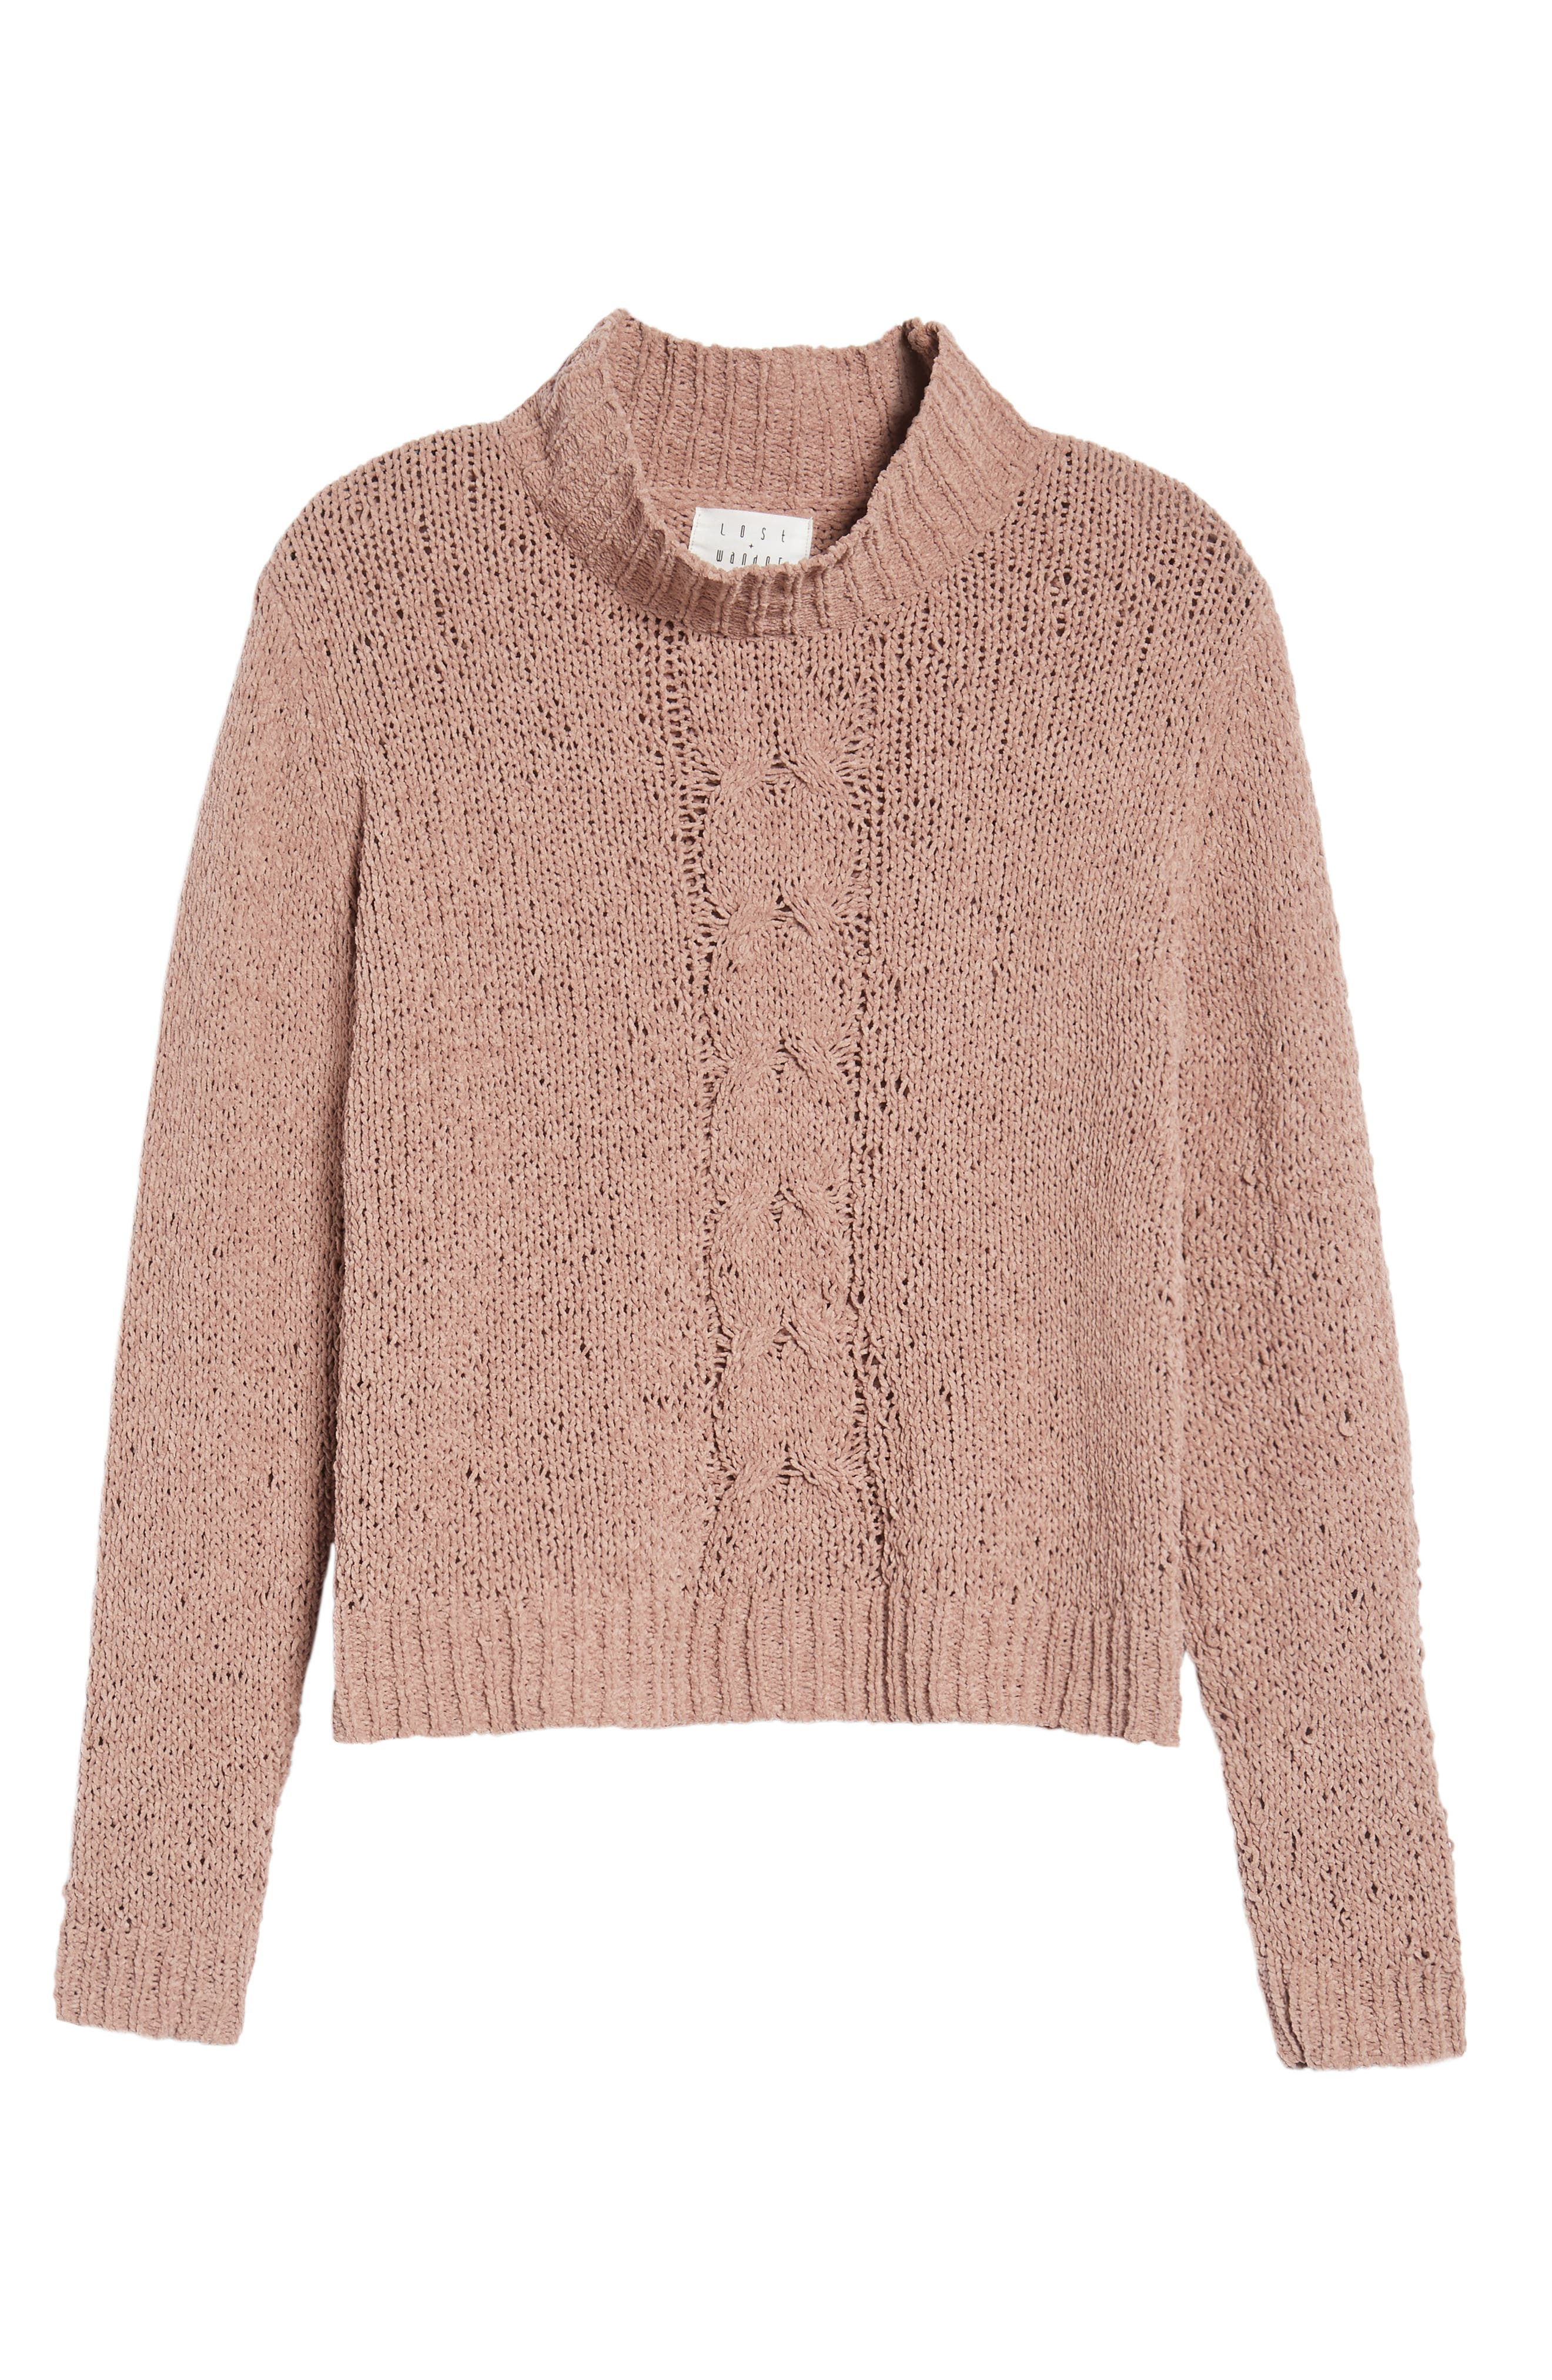 Jolie Chenille Sweater,                             Alternate thumbnail 6, color,                             Mauve